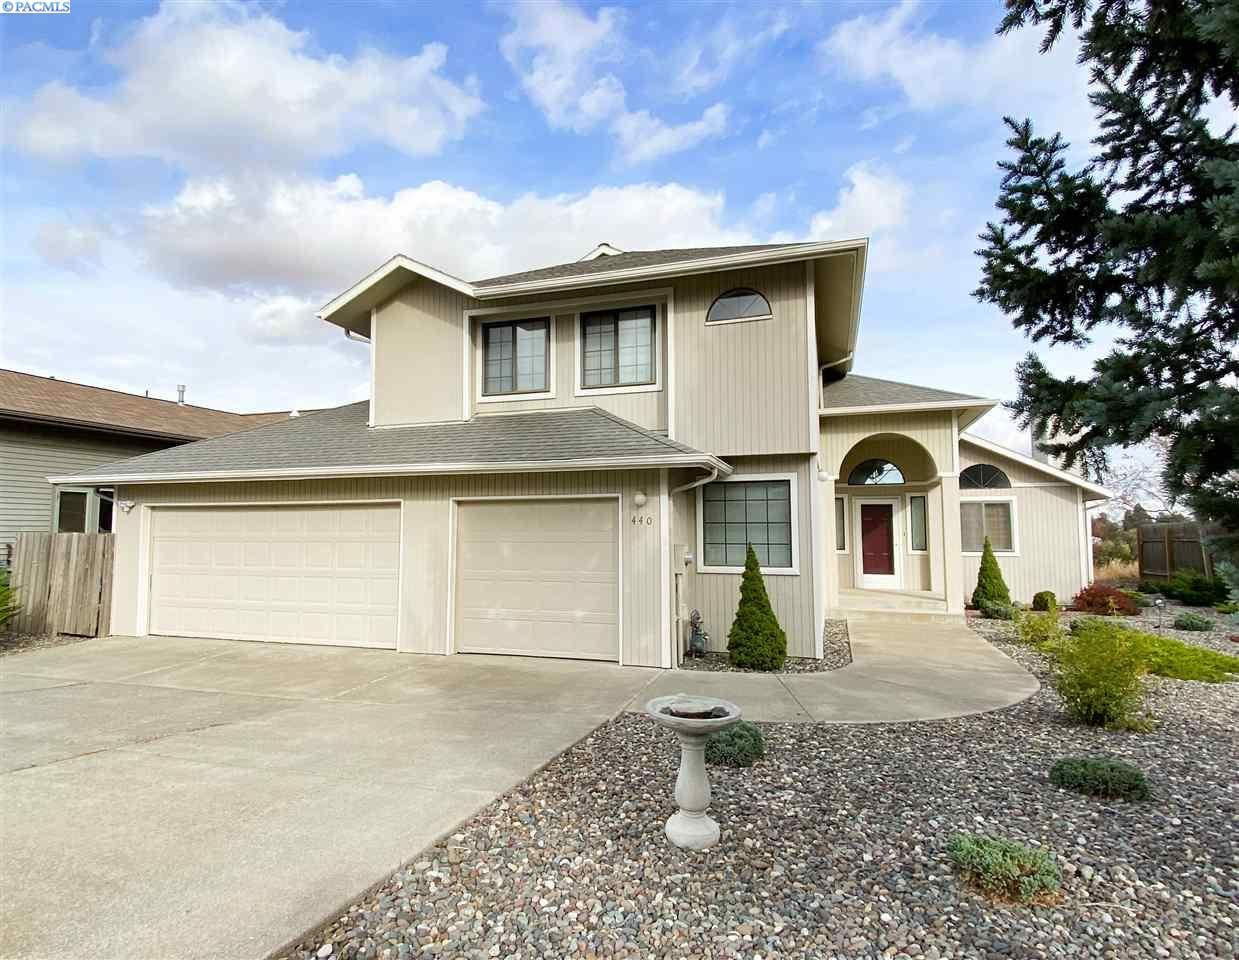 Photo of 440 SW City View, Pullman, WA 99163 (MLS # 249579)